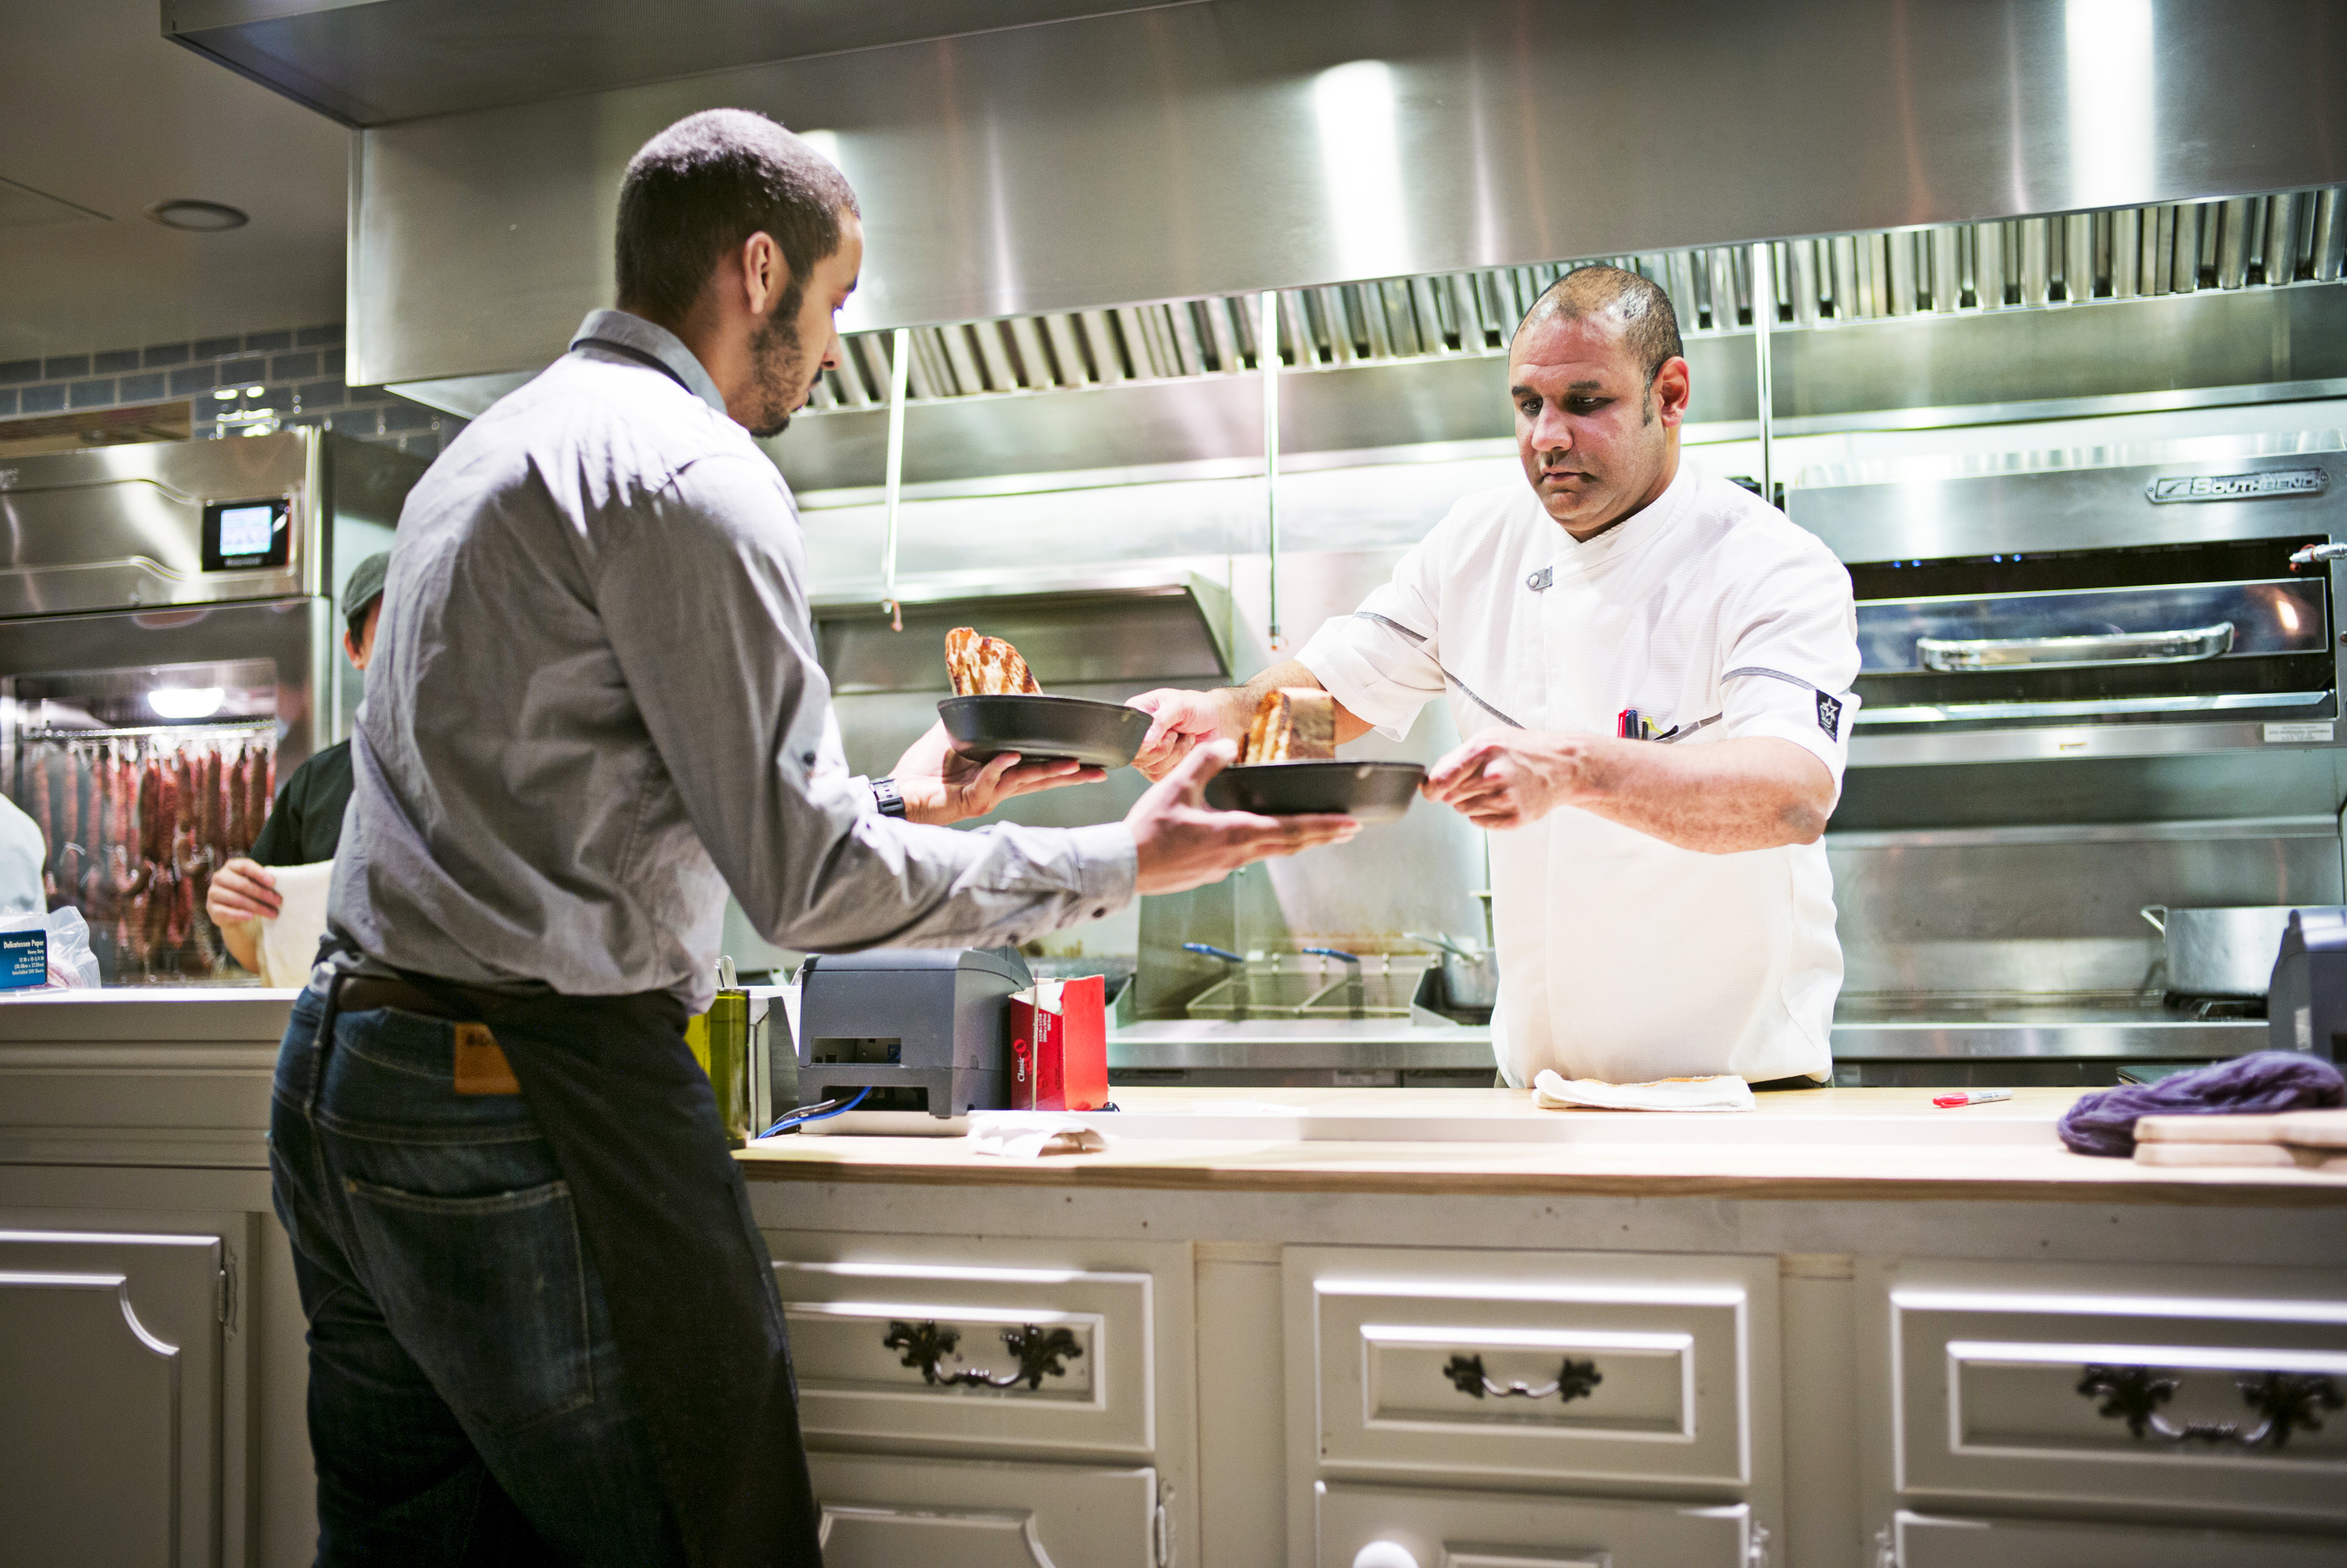 Raynold Mendizábal cooks in the kitchen at Urban Butcher